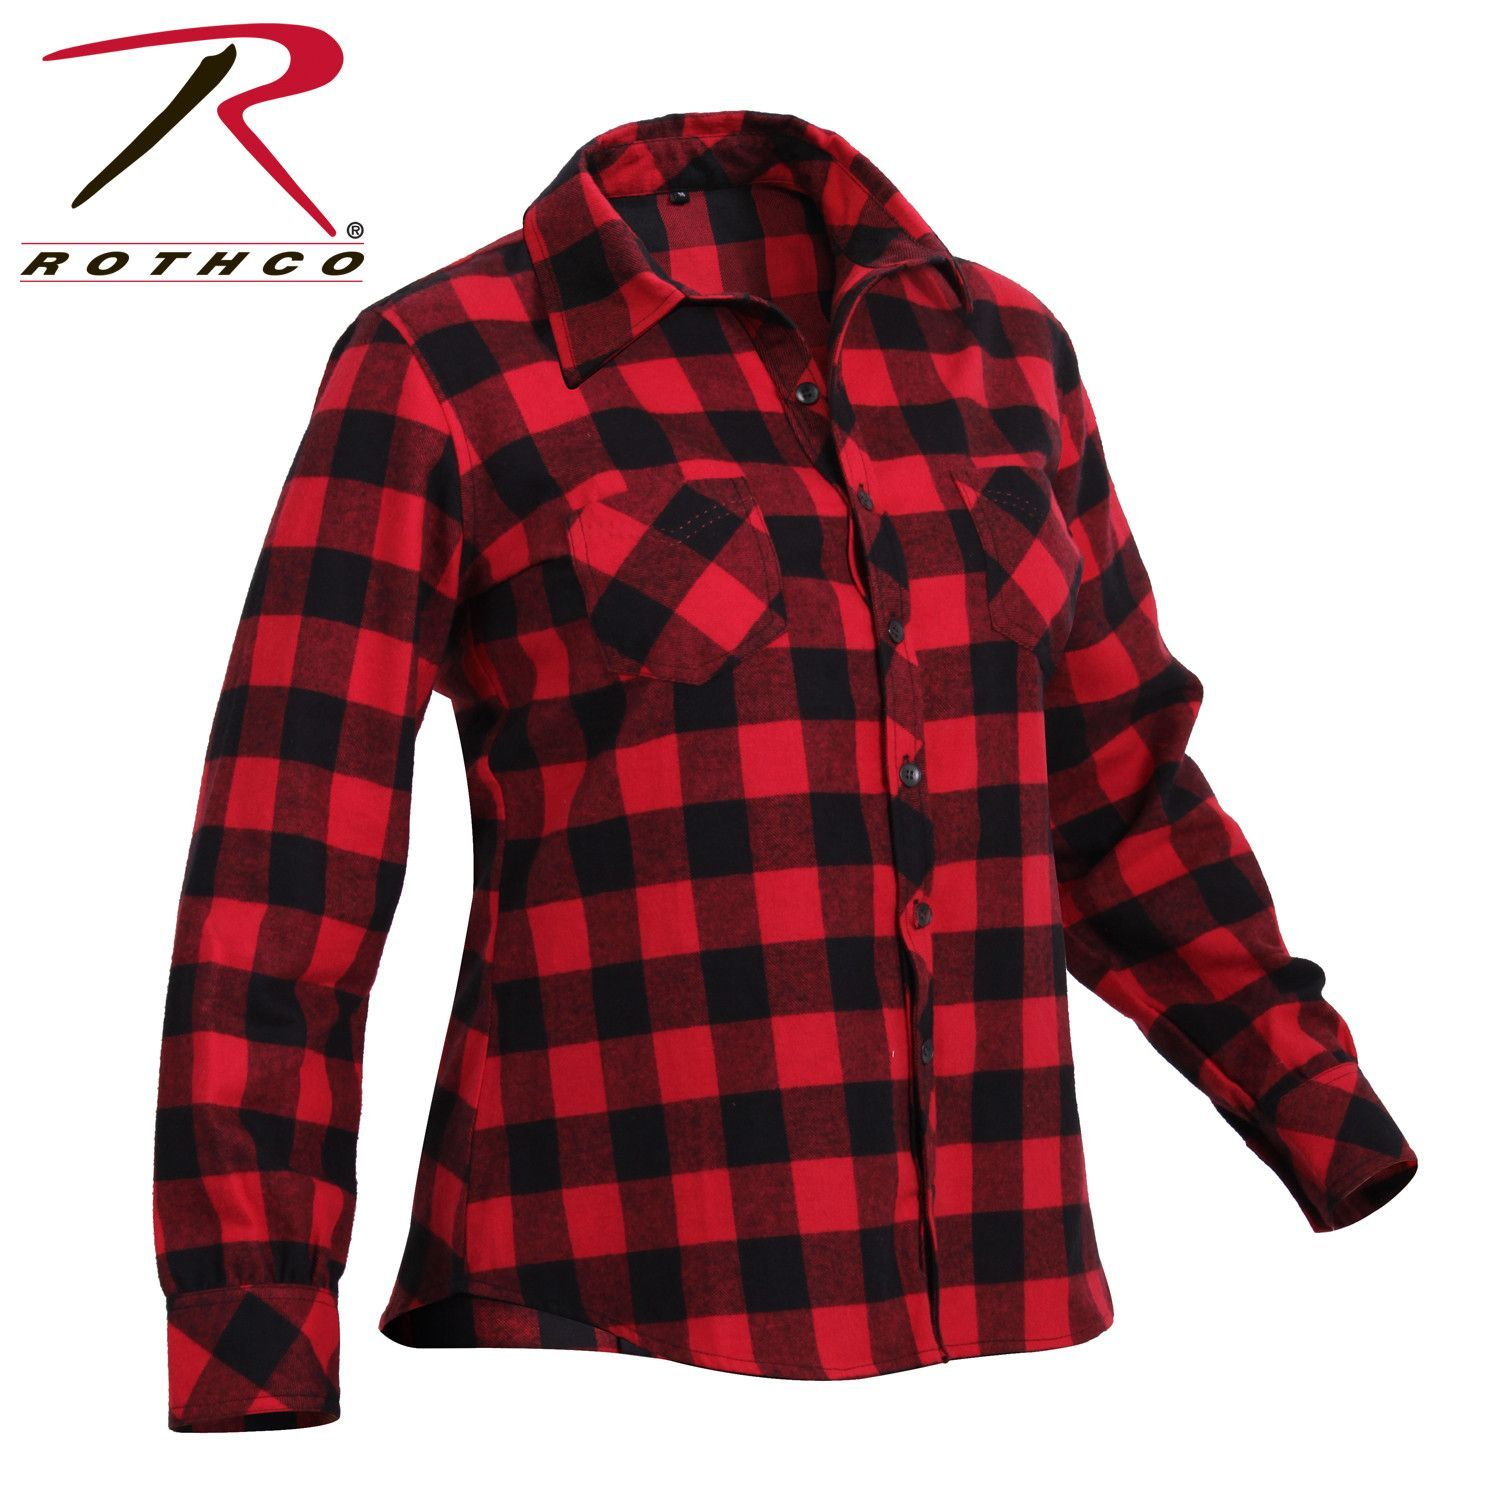 Red plaid flannel jacket  Rothco Womens Plaid Flannel Shirt  Products  Pinterest  Plaid